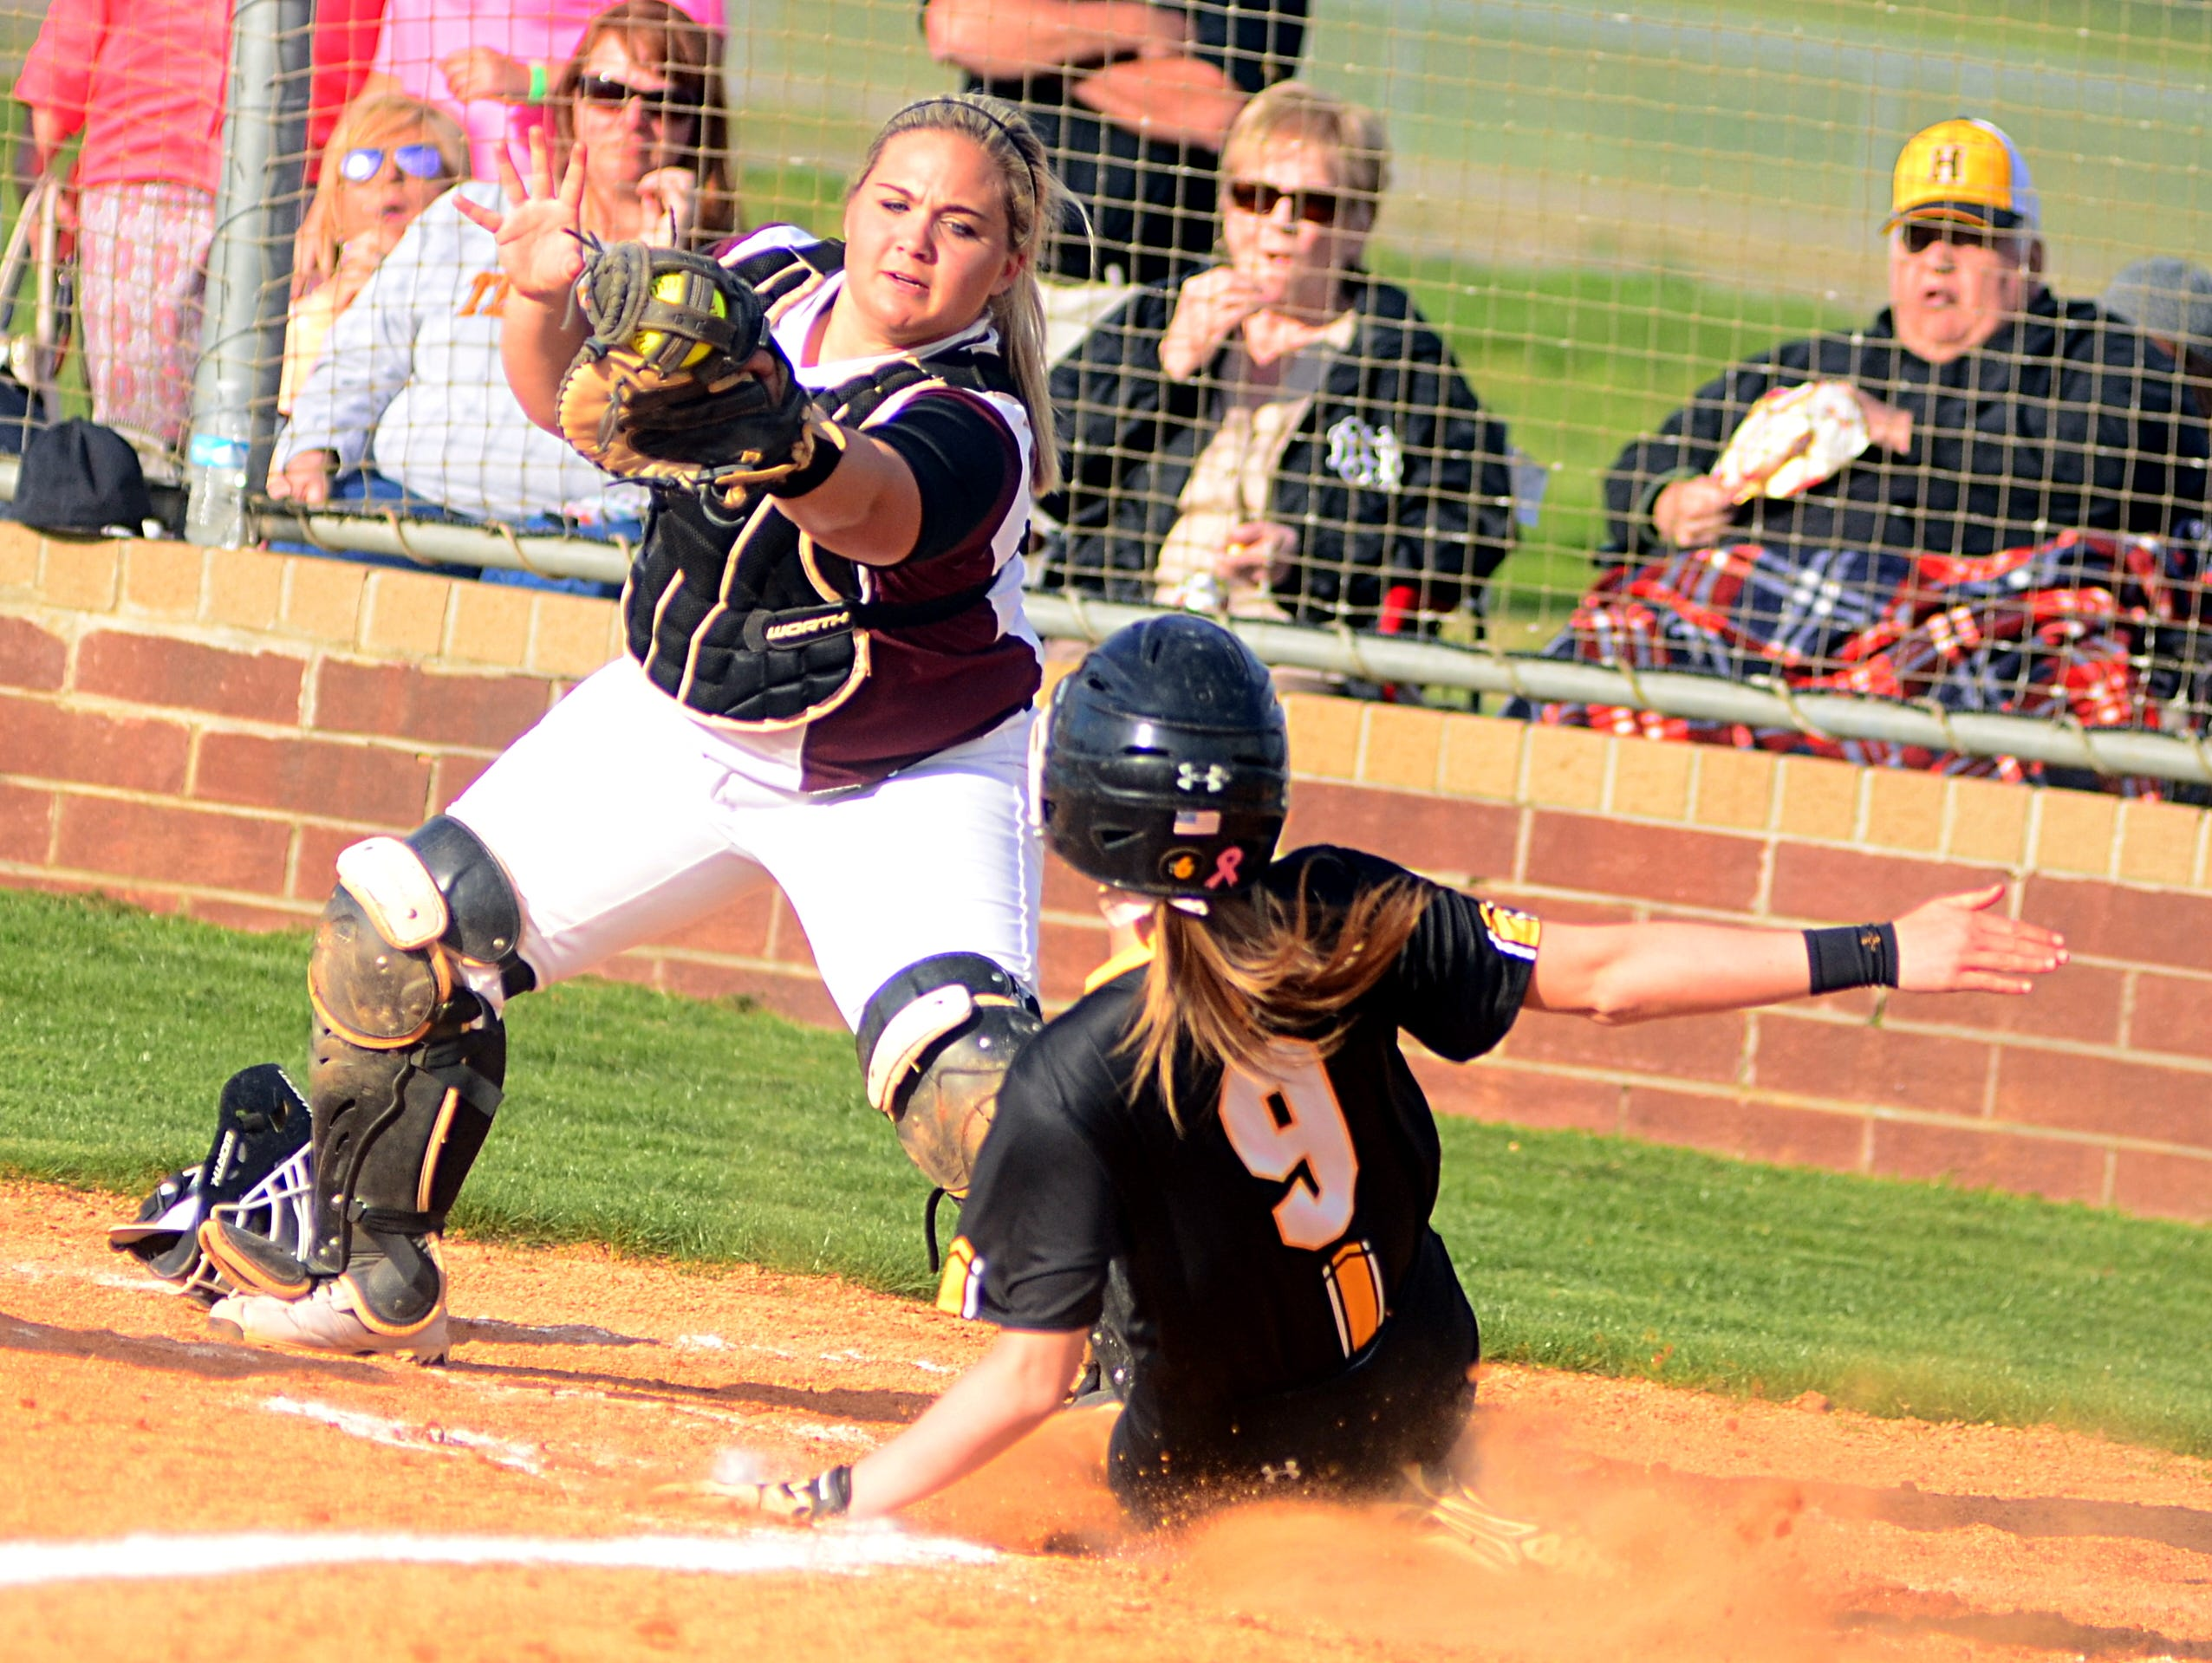 Station Camp High senior catcher Chasity Wheeley receives a throw at home plate as Hendersonville junior M.J. Mattei scores during first-inning action.